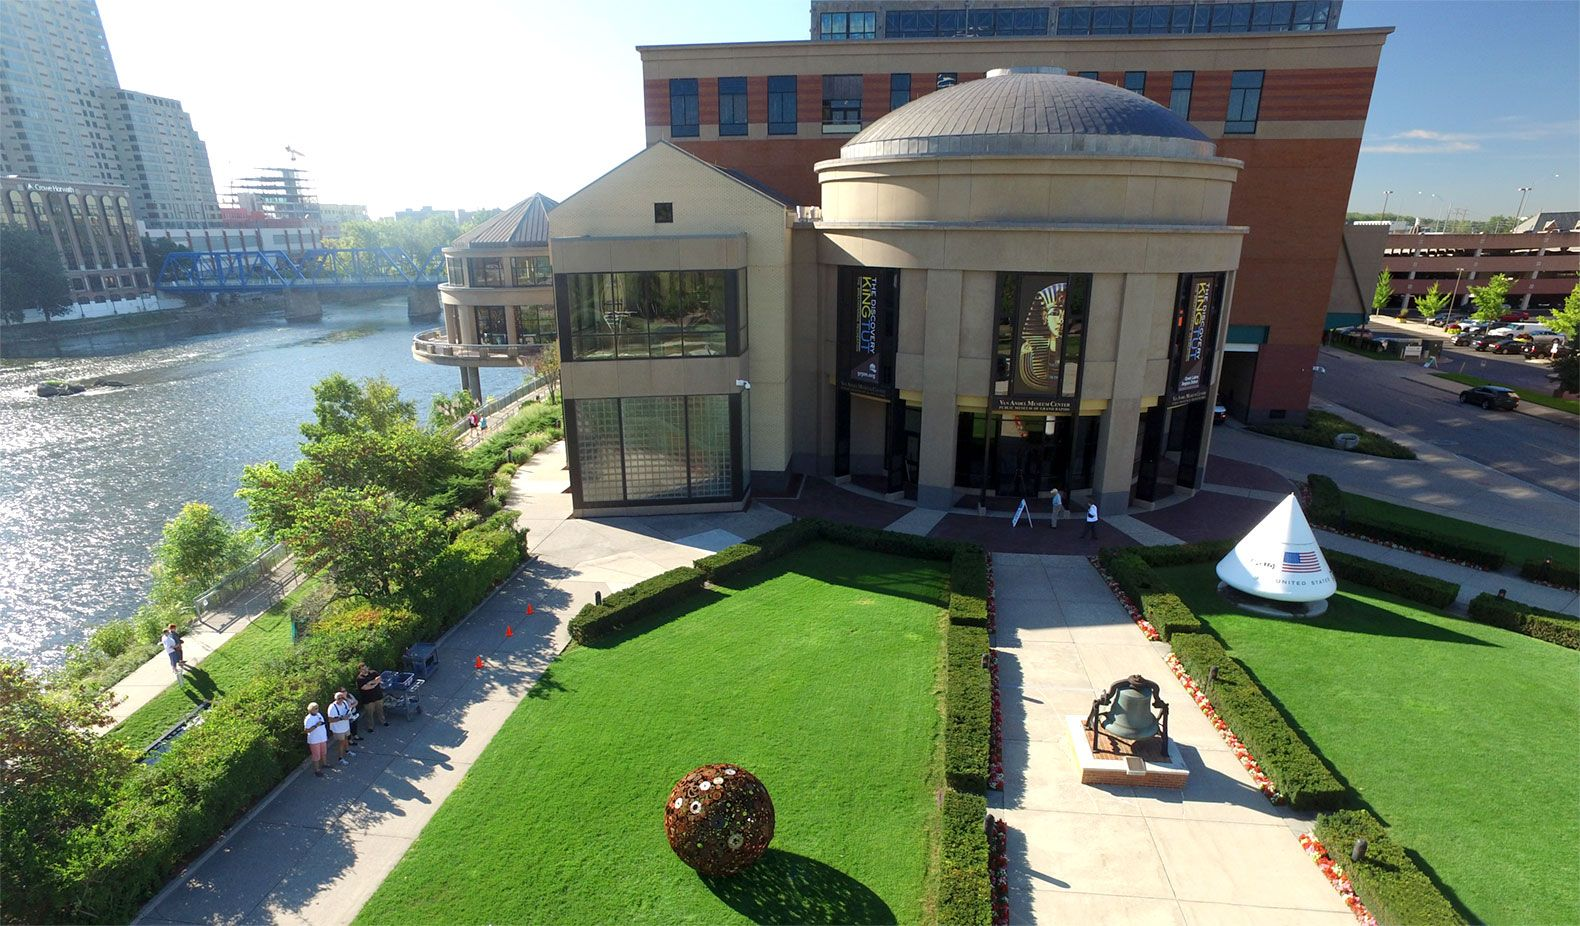 The Grand Rapids Public Museum, which opened in 1854, features exhibits on topics that range from King Tut to robots.